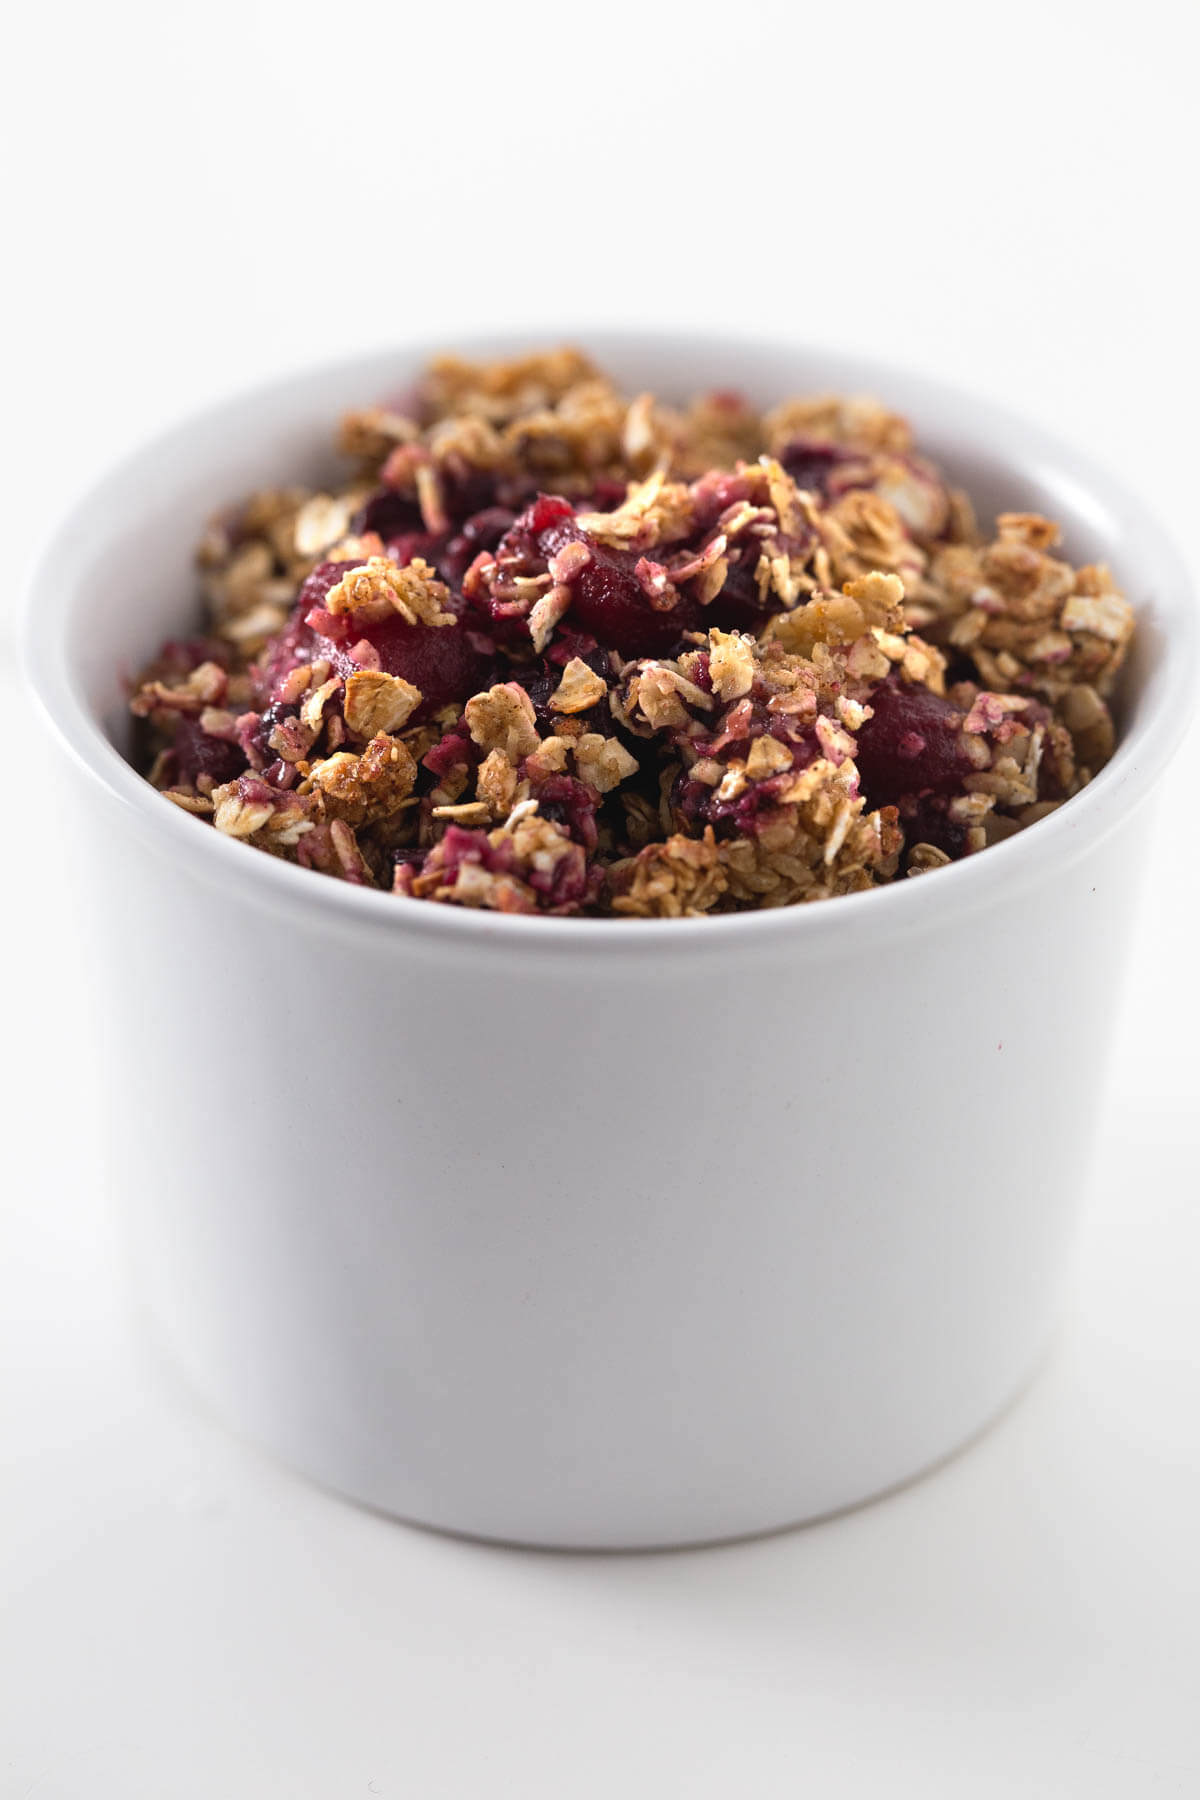 Fat-Free Vegan Apple Berry Crumble: This fat-free vegan apple berry crumbles to die for and is a very healthy dessert or breakfast. We like it colder.